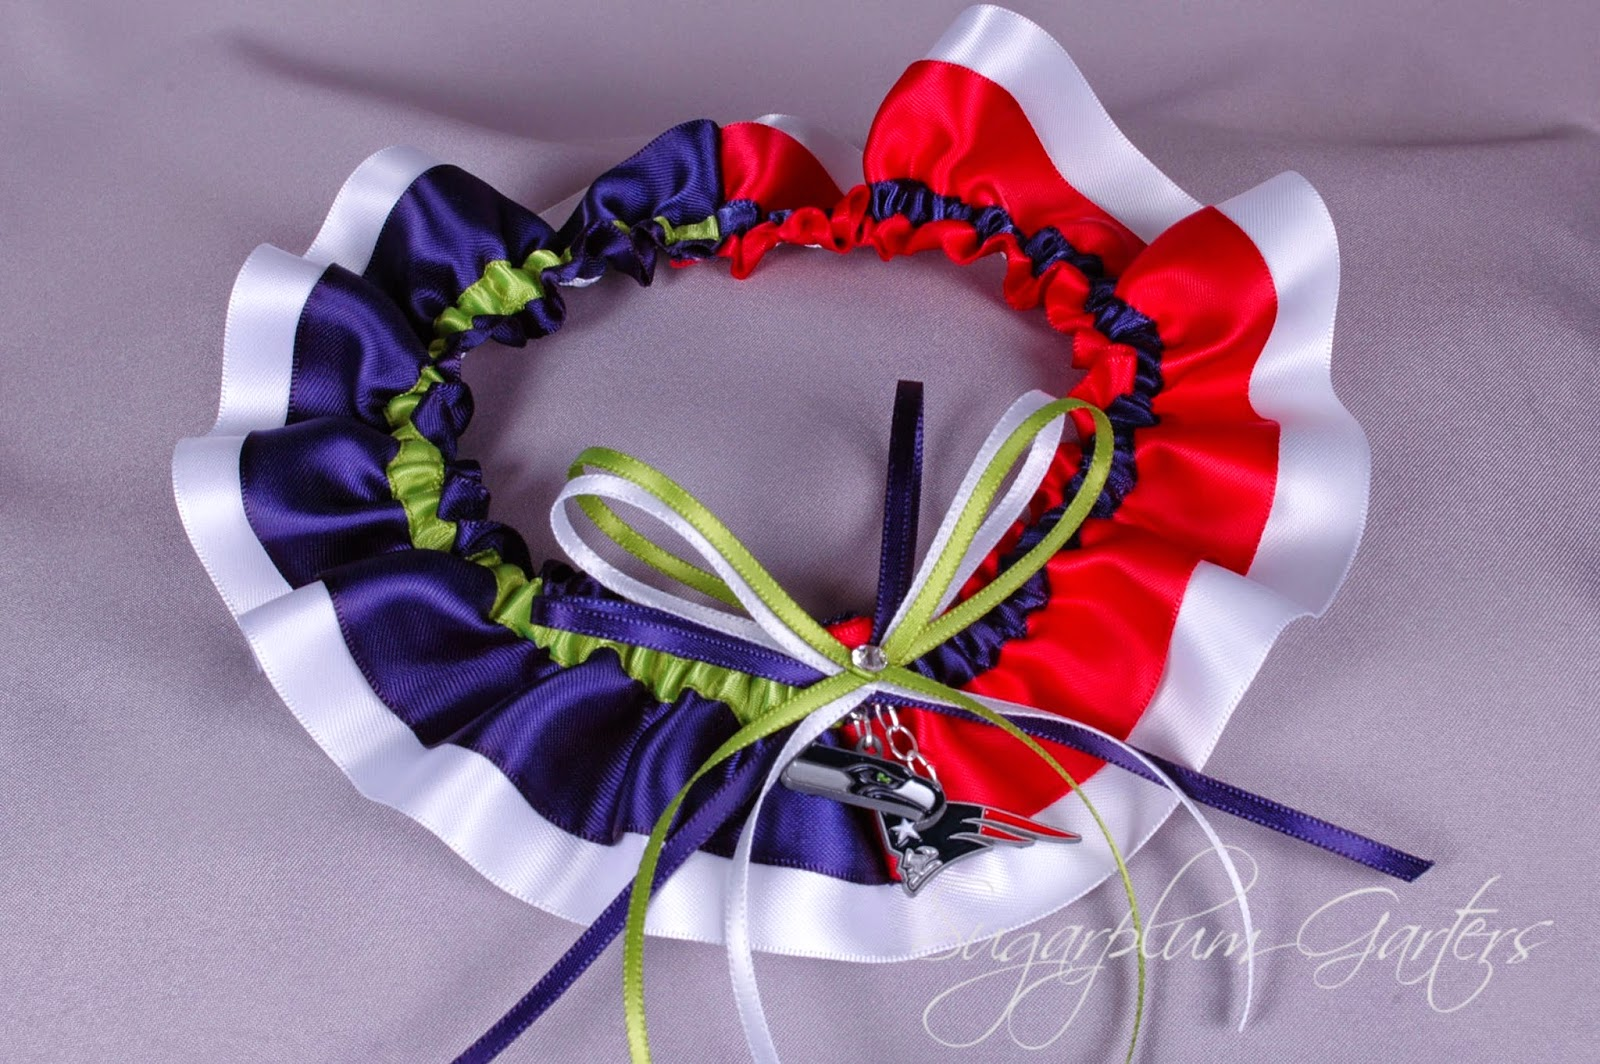 Superbowl XLIX Seattle Seahawks vs New England Patriots Rival Garter by Sugarplum Garters